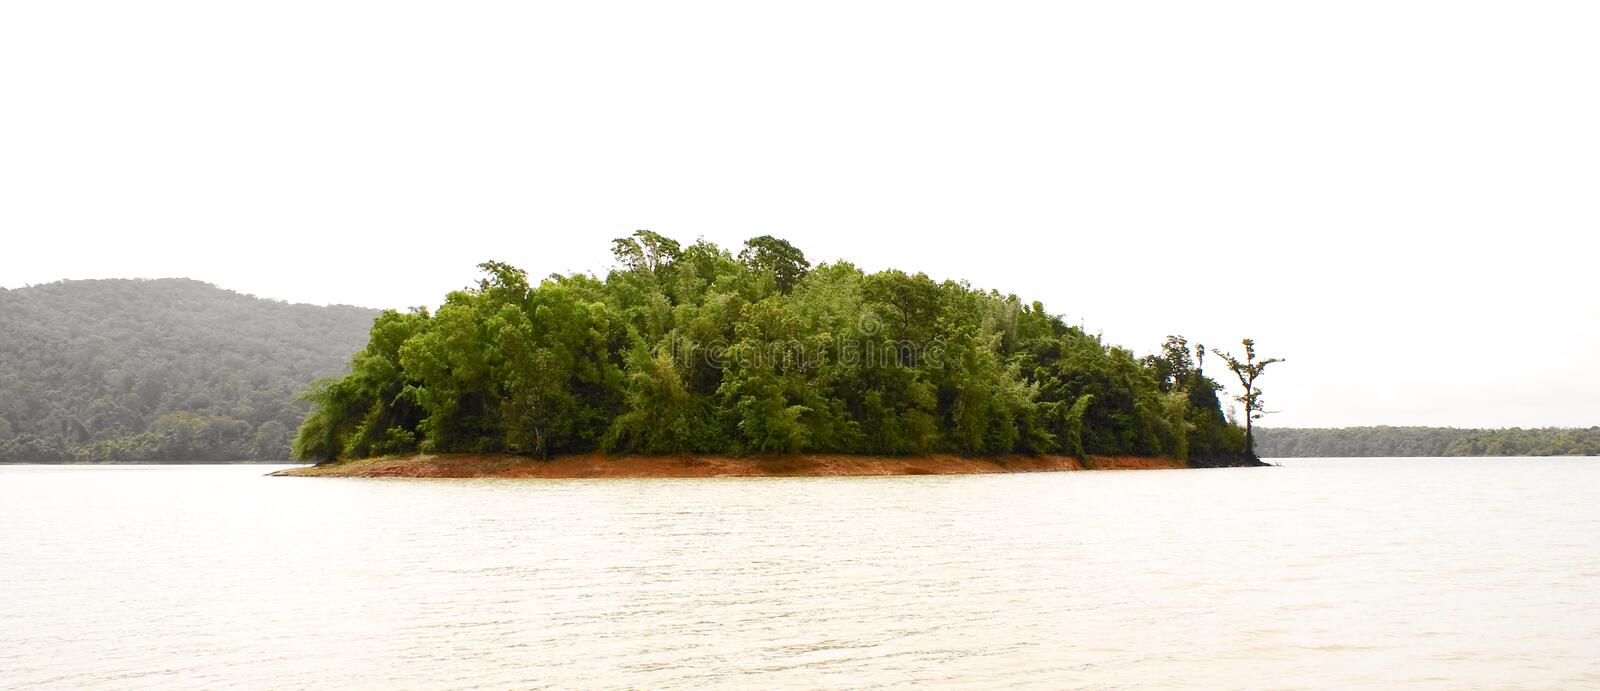 A green island in the middle of the river. royalty free stock photos